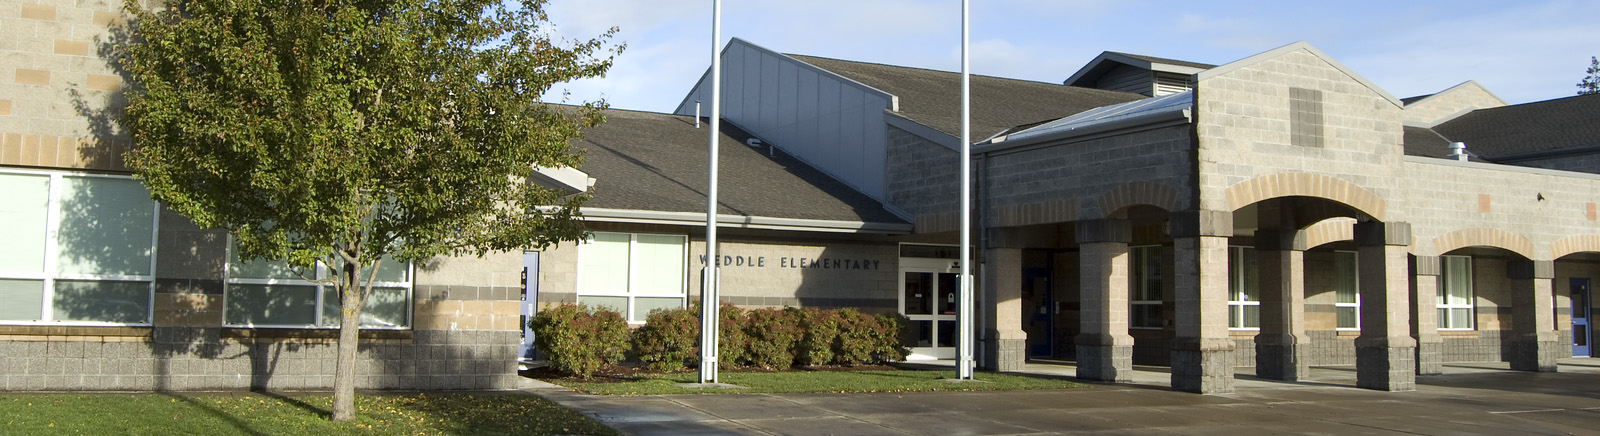 front, exterior entrance of Weddle Elementary building